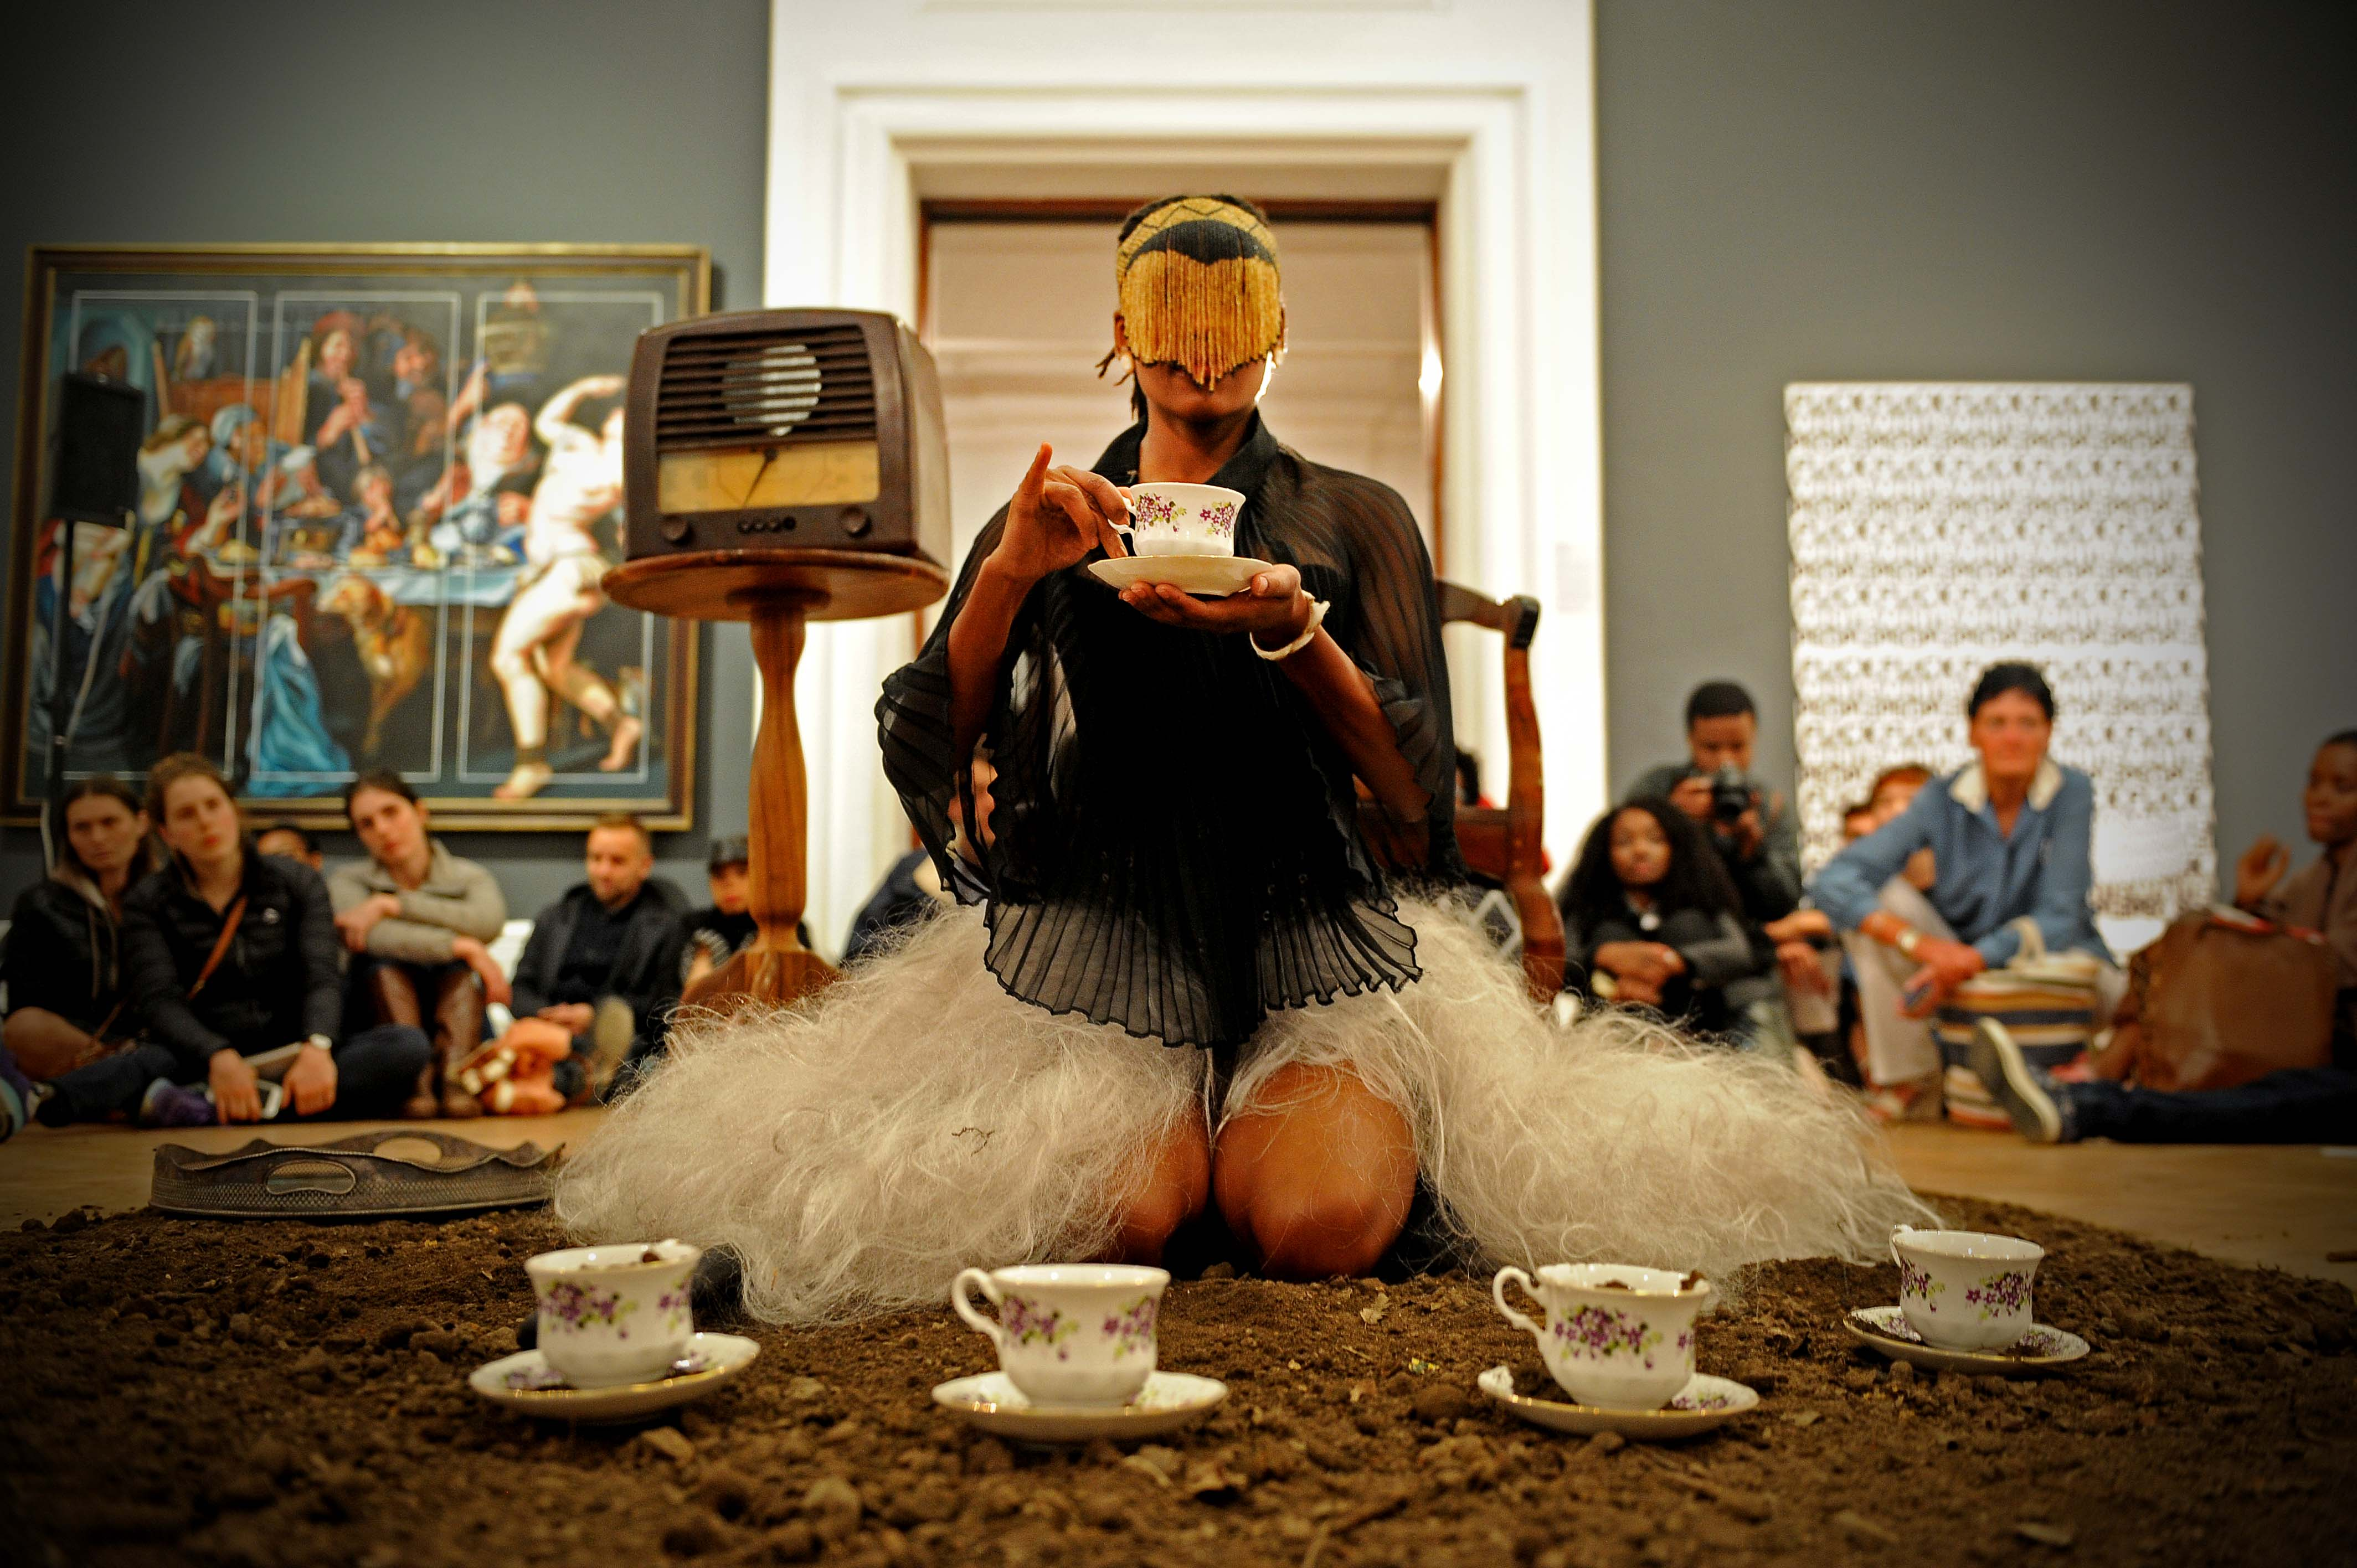 Claiming public space: Artist Sethembile Msezane on history and commemorative practices - Excerpts From -  the Past (2016)